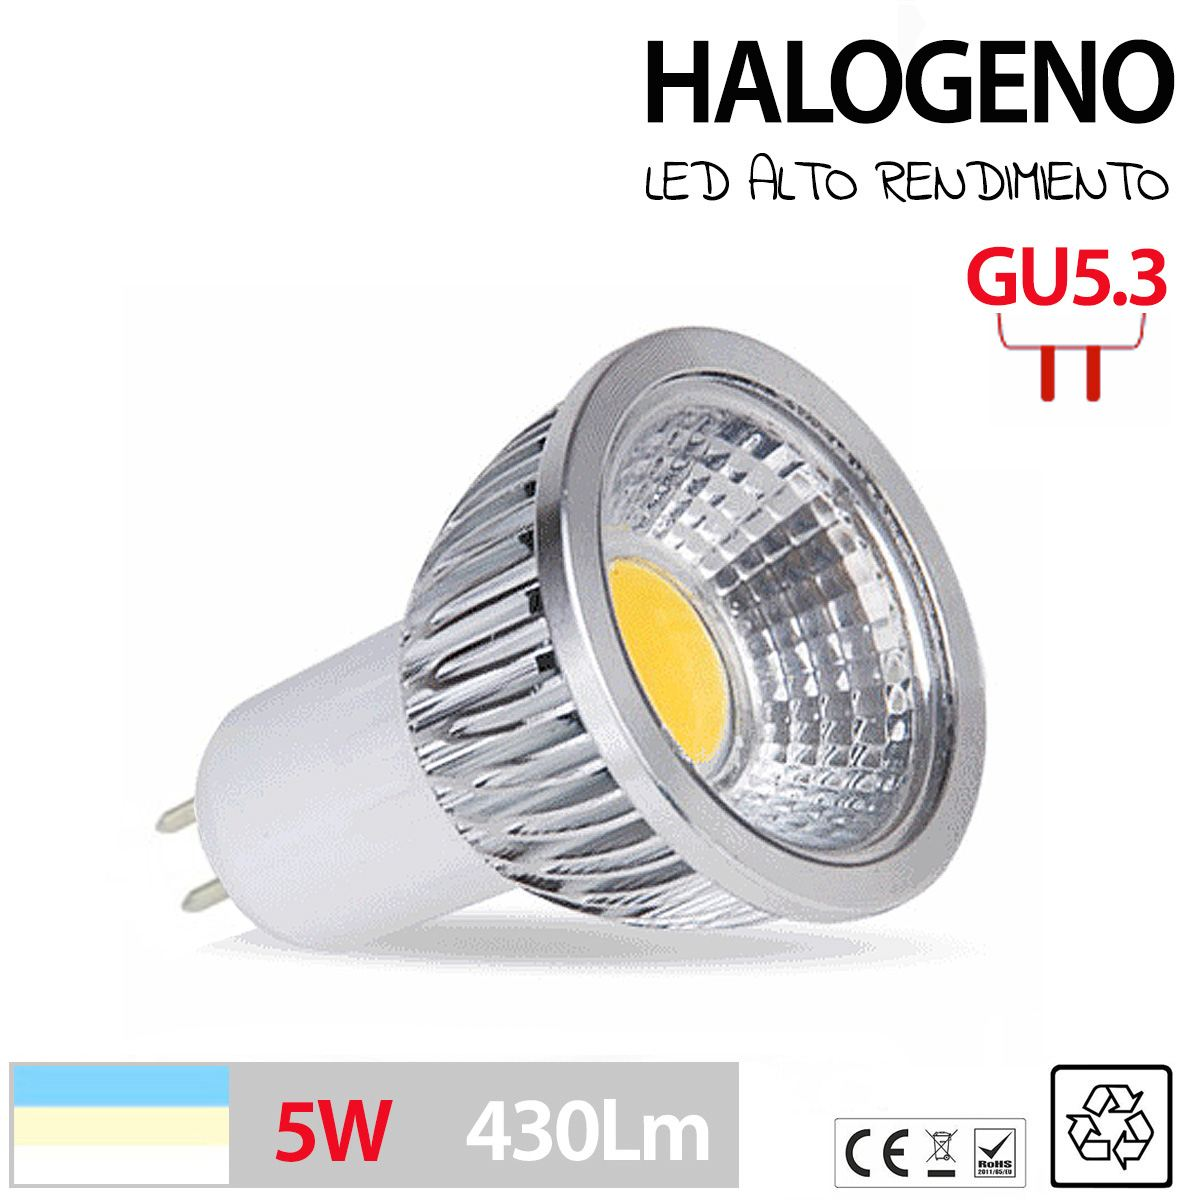 Halogenos led gu10 gu5 3 mr16 en 3w 5w 7w blanco calido - Led para halogenos ...